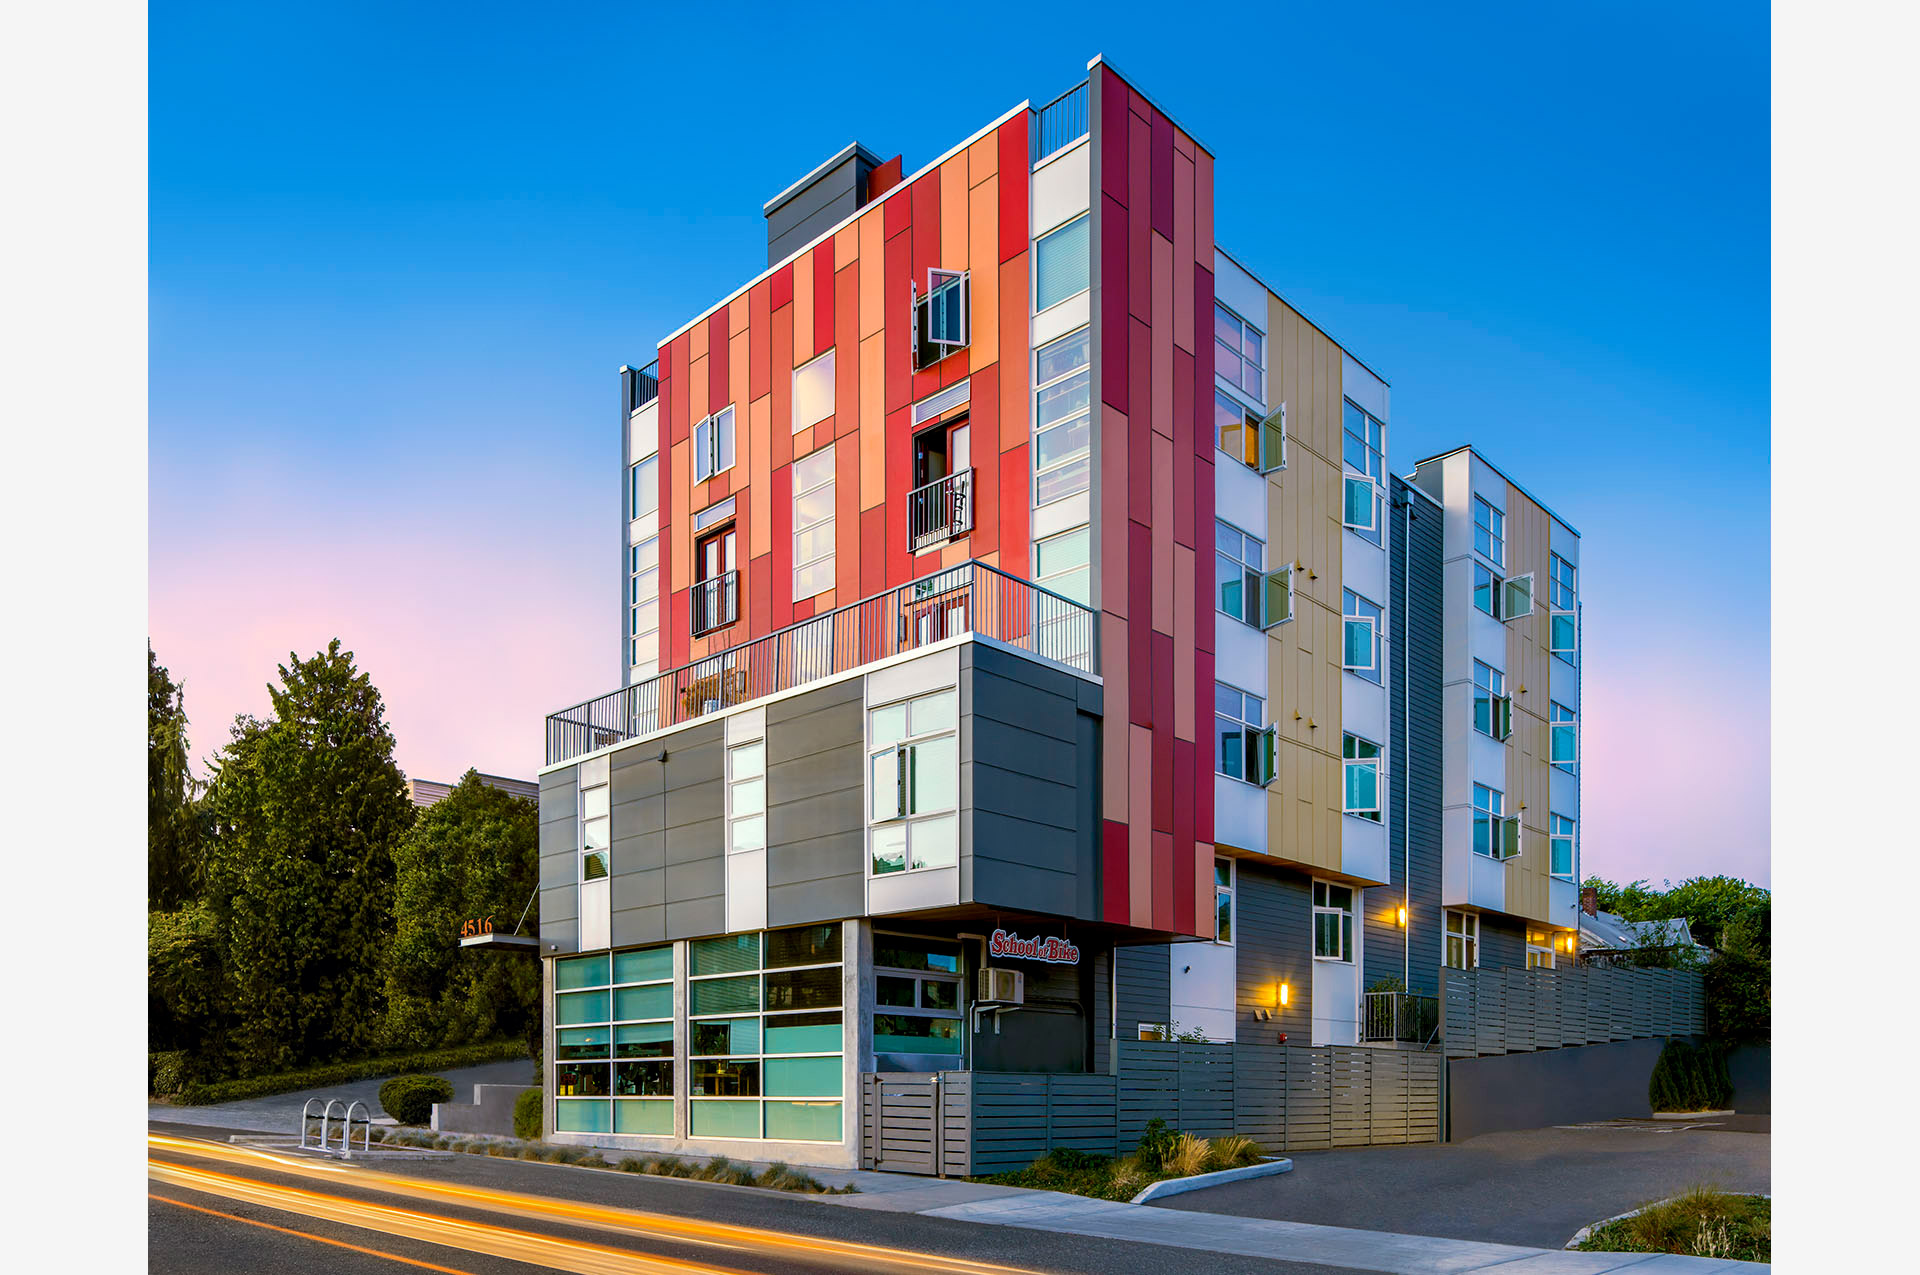 Cheap Apartments Wallingford Seattle Liv Wallingford Rentals Seattle Wa Apartments Com Condos